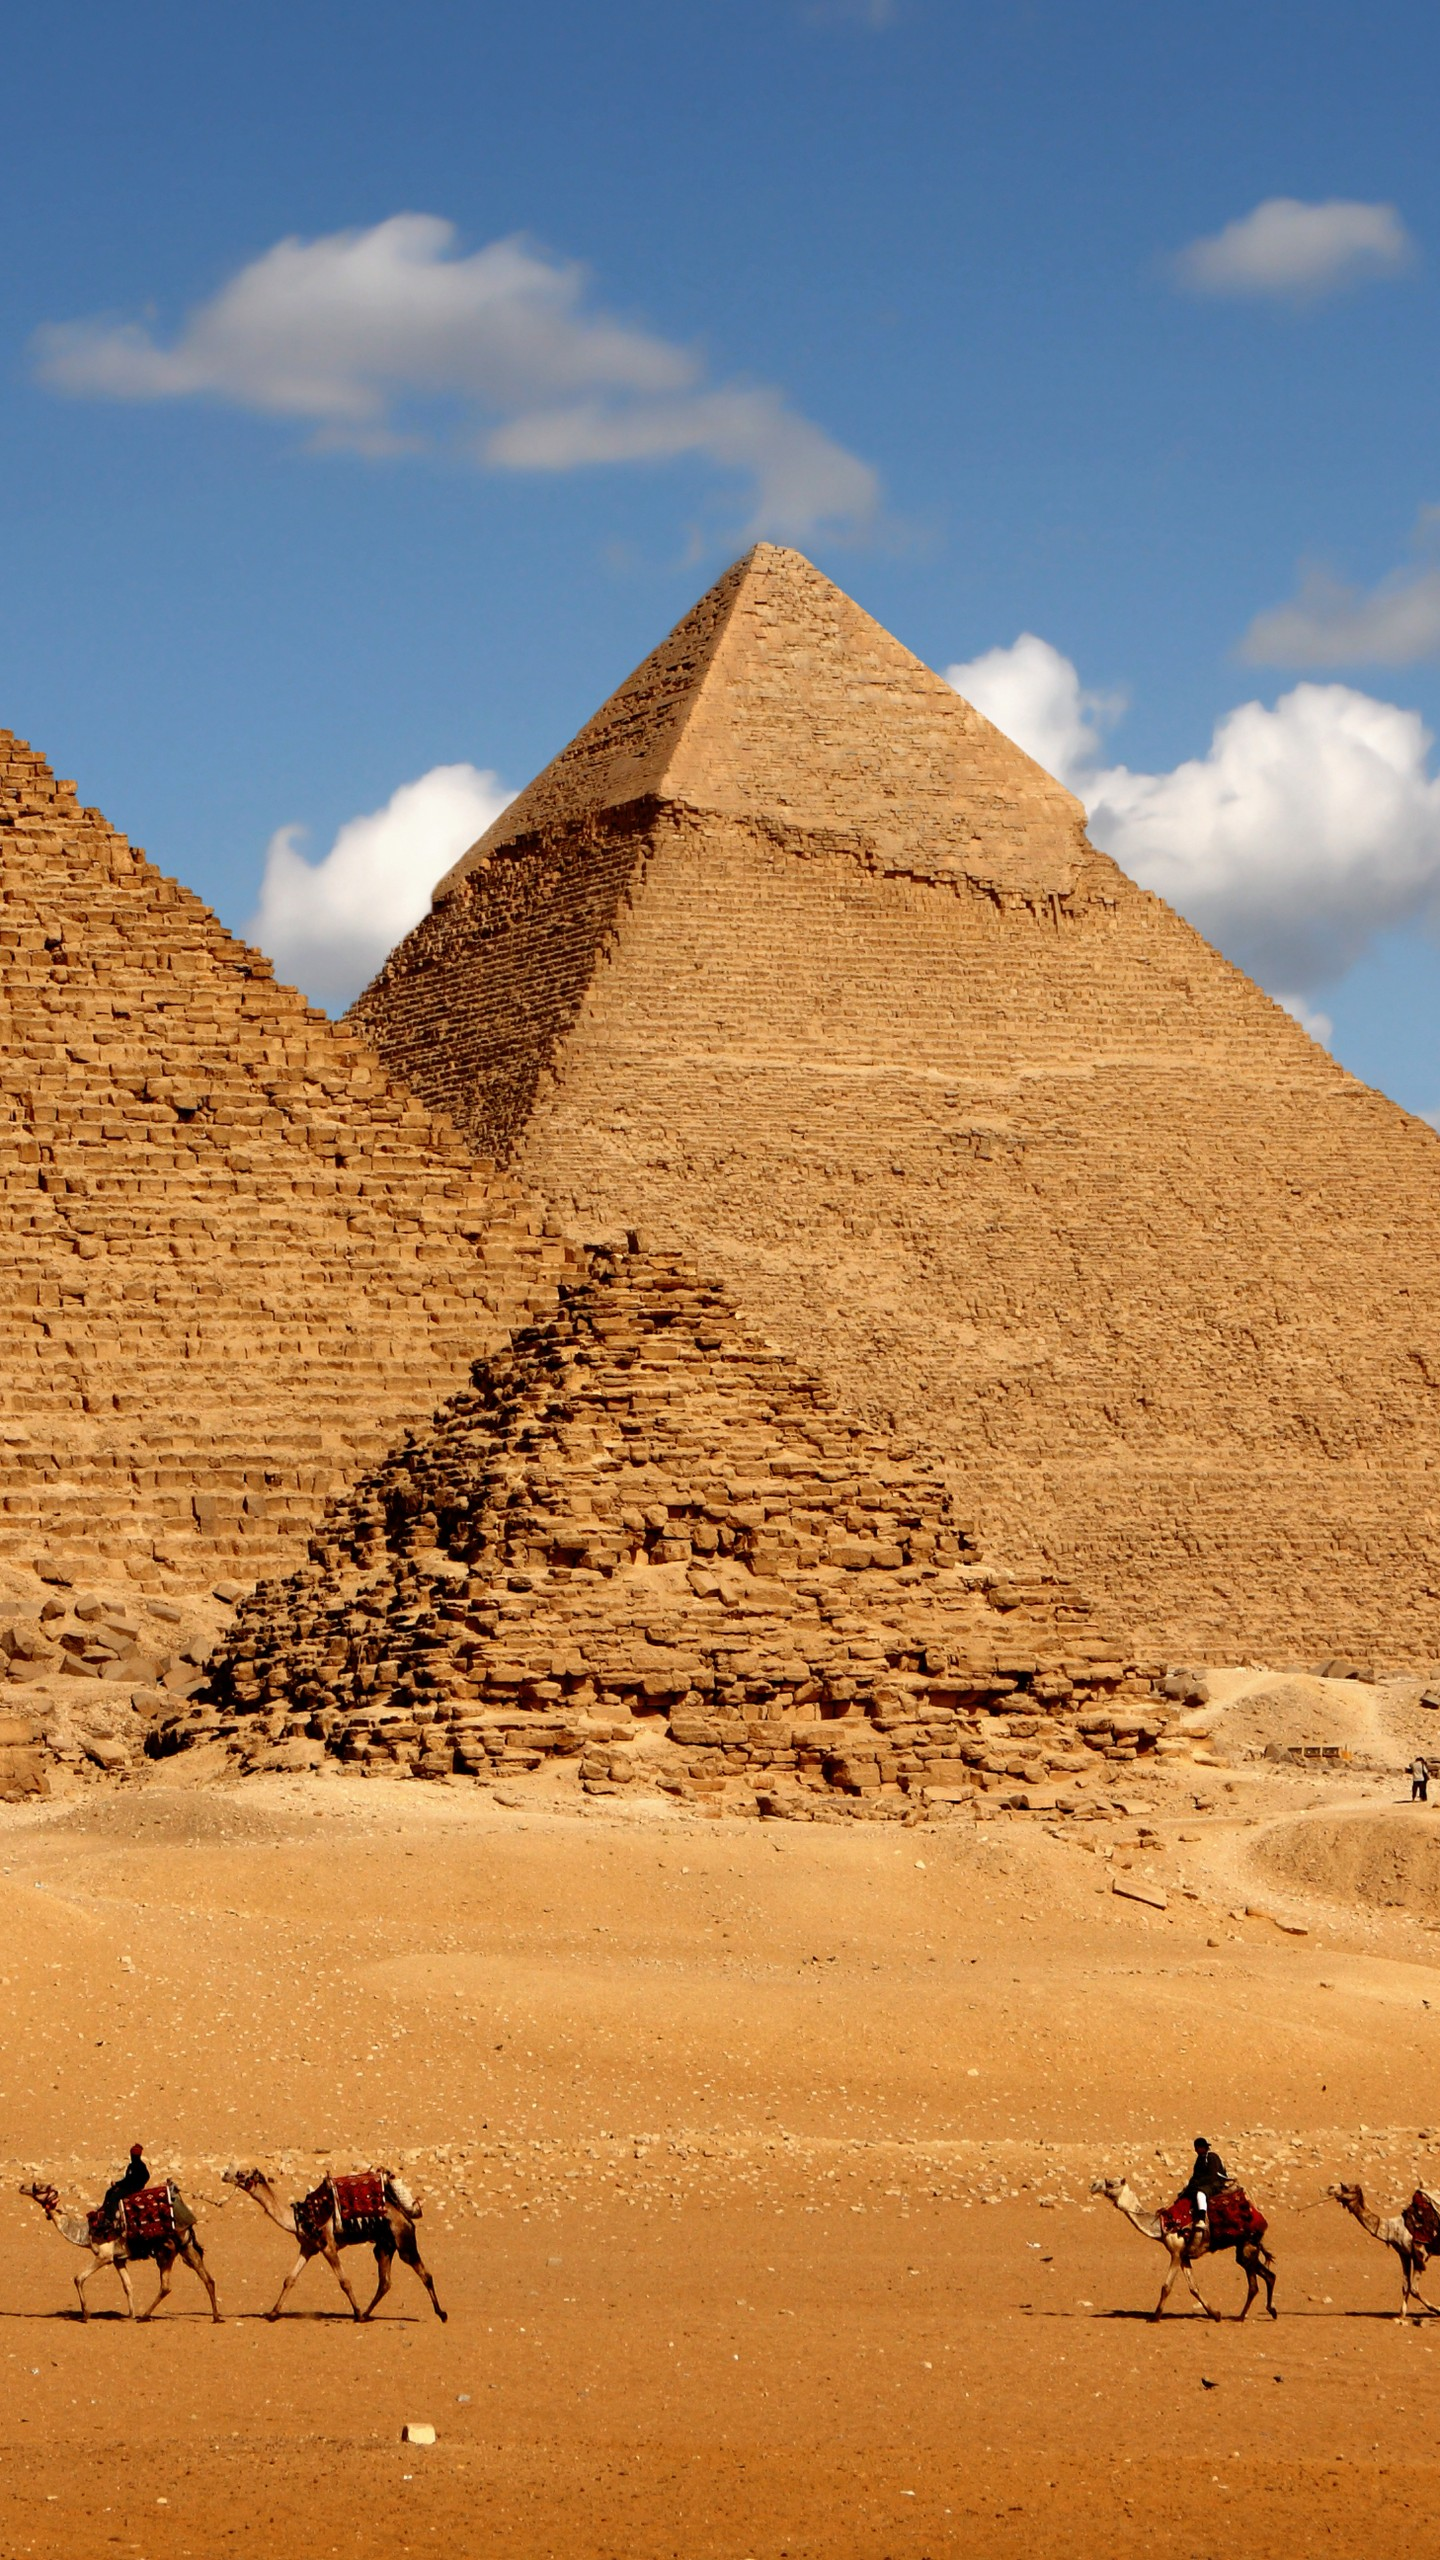 Photography Wallpaper Hd Quotes Wallpaper Egypt Pyramid Camel 8k Architecture 16472